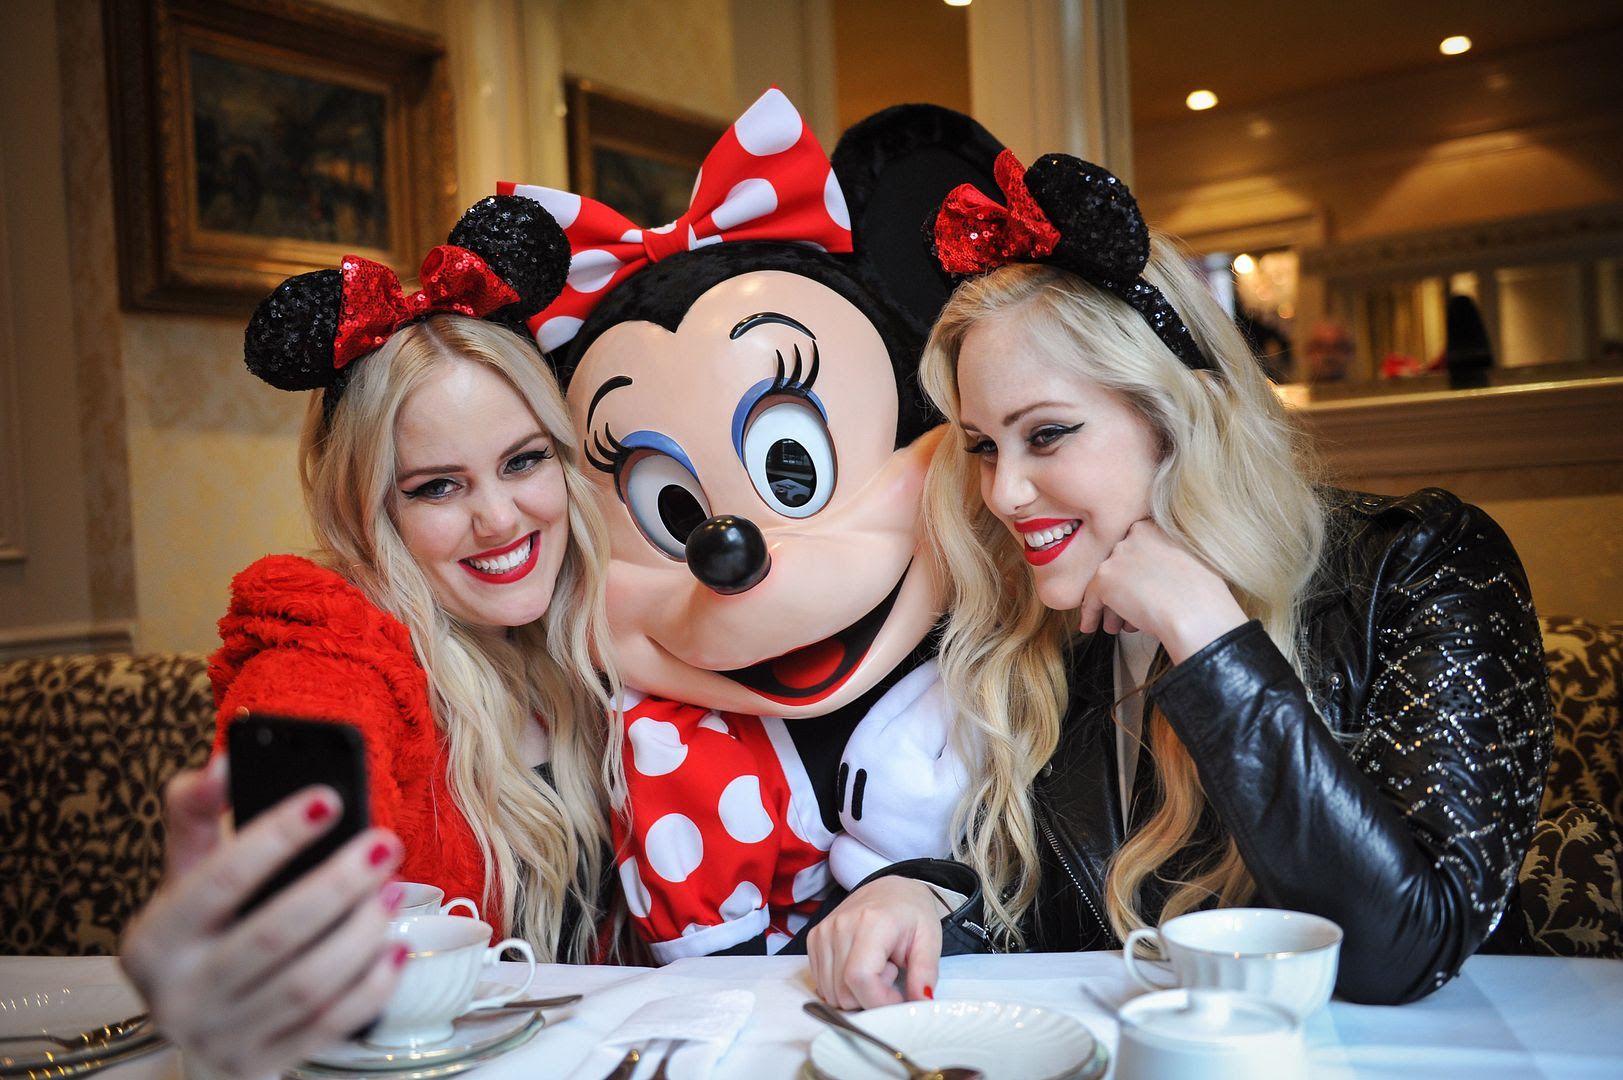 photo minniestyle-minniemouse-disney-beckermanblog-cailliandsambeckerman-disney-worldmastercardfashionweek-toronto-9_zpsc21cff63.jpg